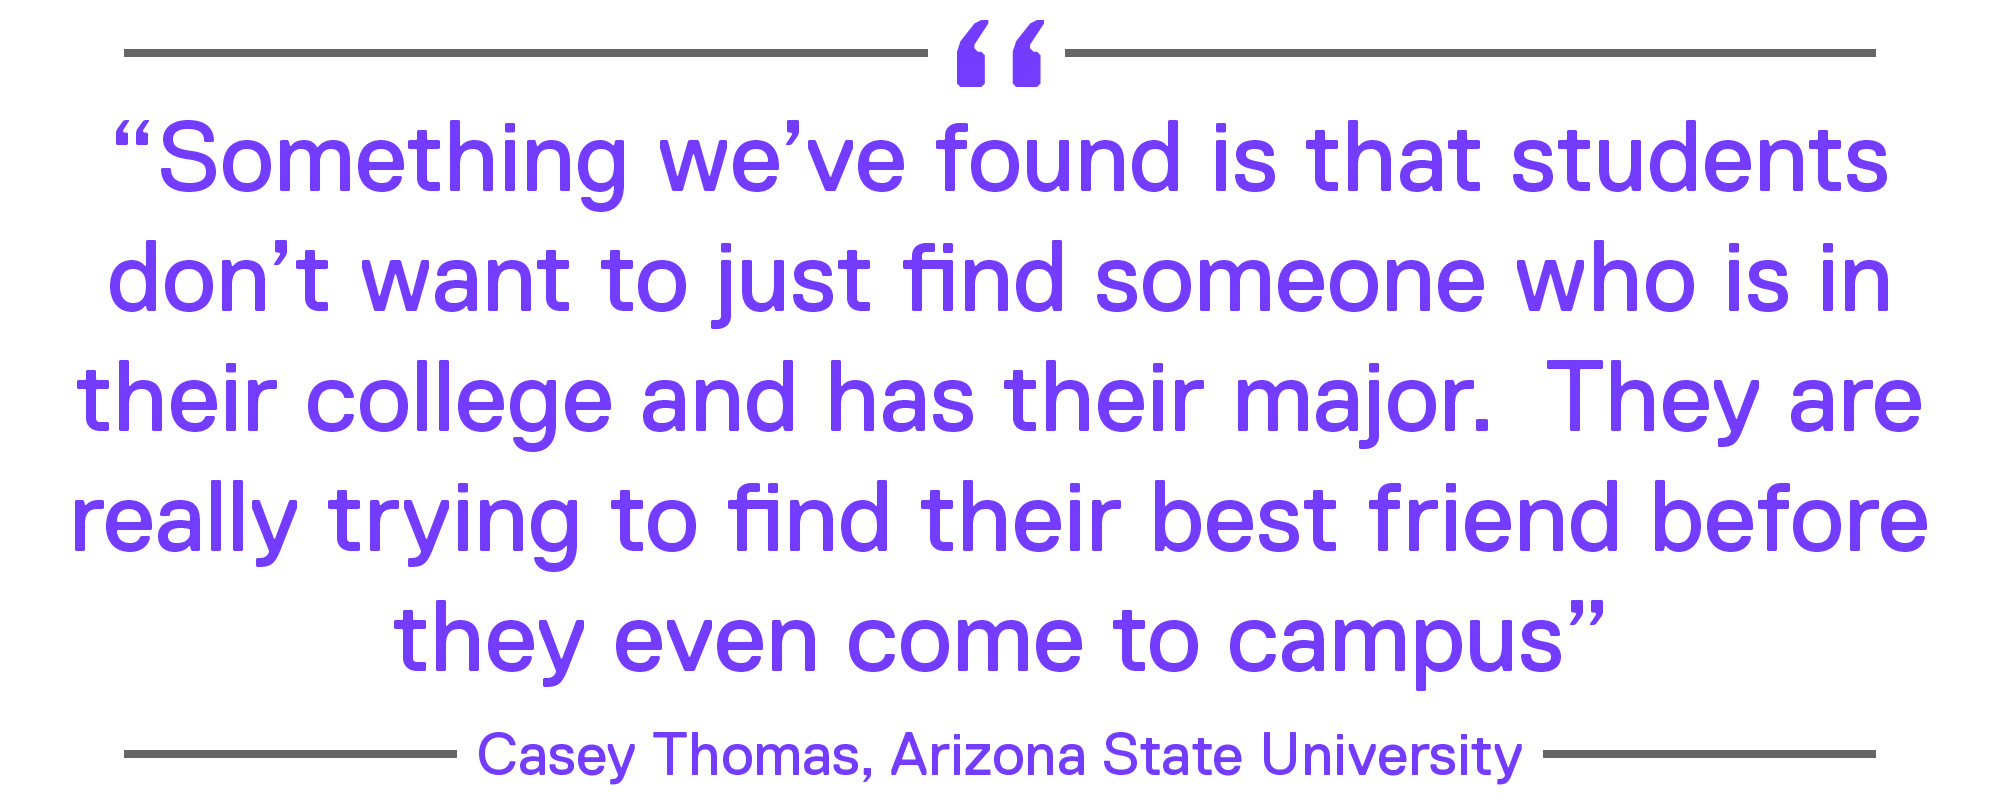 """""""Something we've found is that students don't want to just find someone who is in their college and has their major. They are really trying to find their best friend before they even come to campus."""" - Casey Thomas, Arizona State University"""